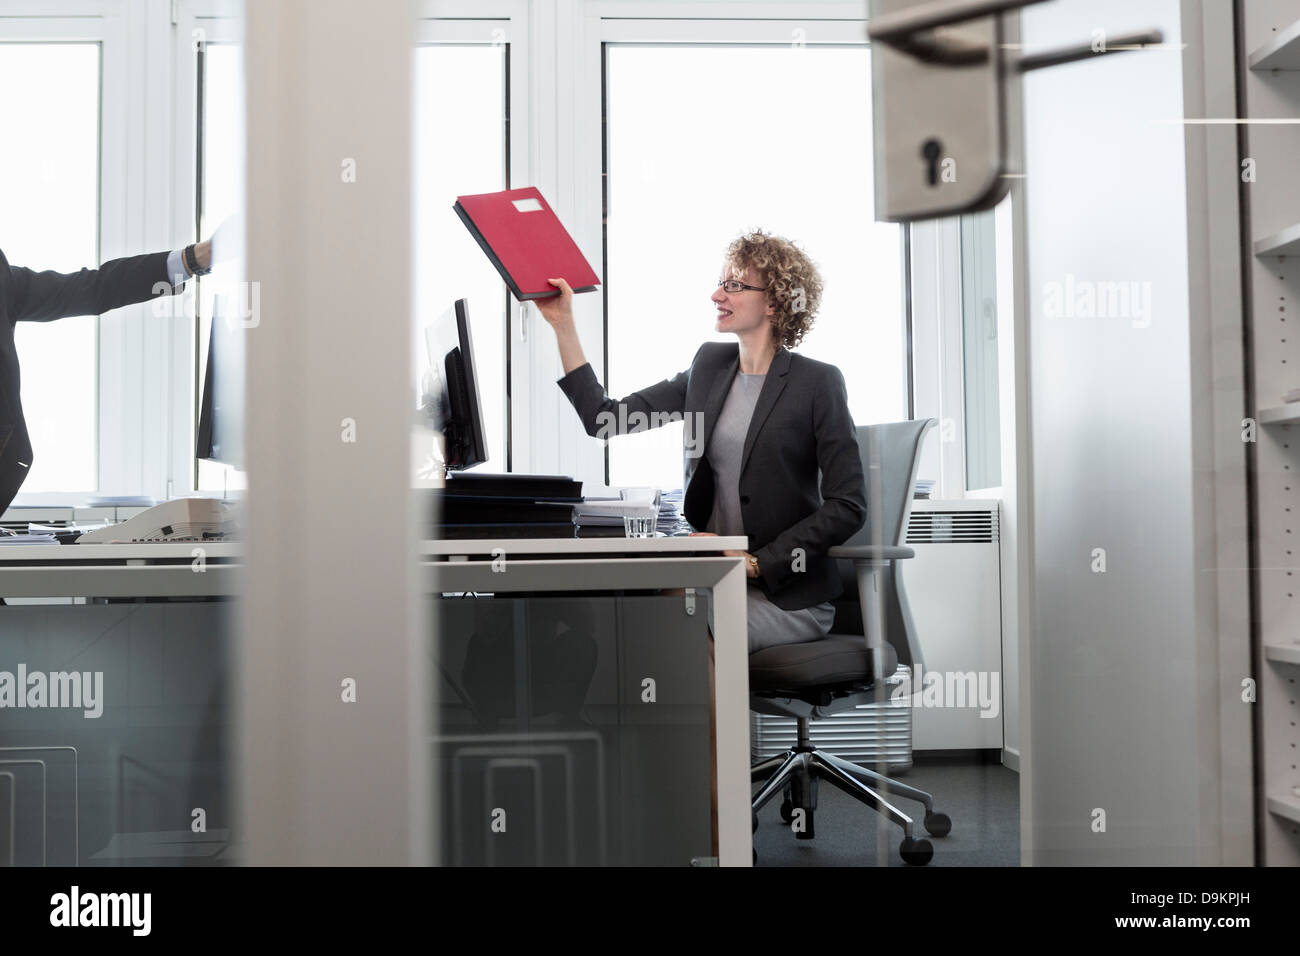 Businesswoman handing file to man in office - Stock Image